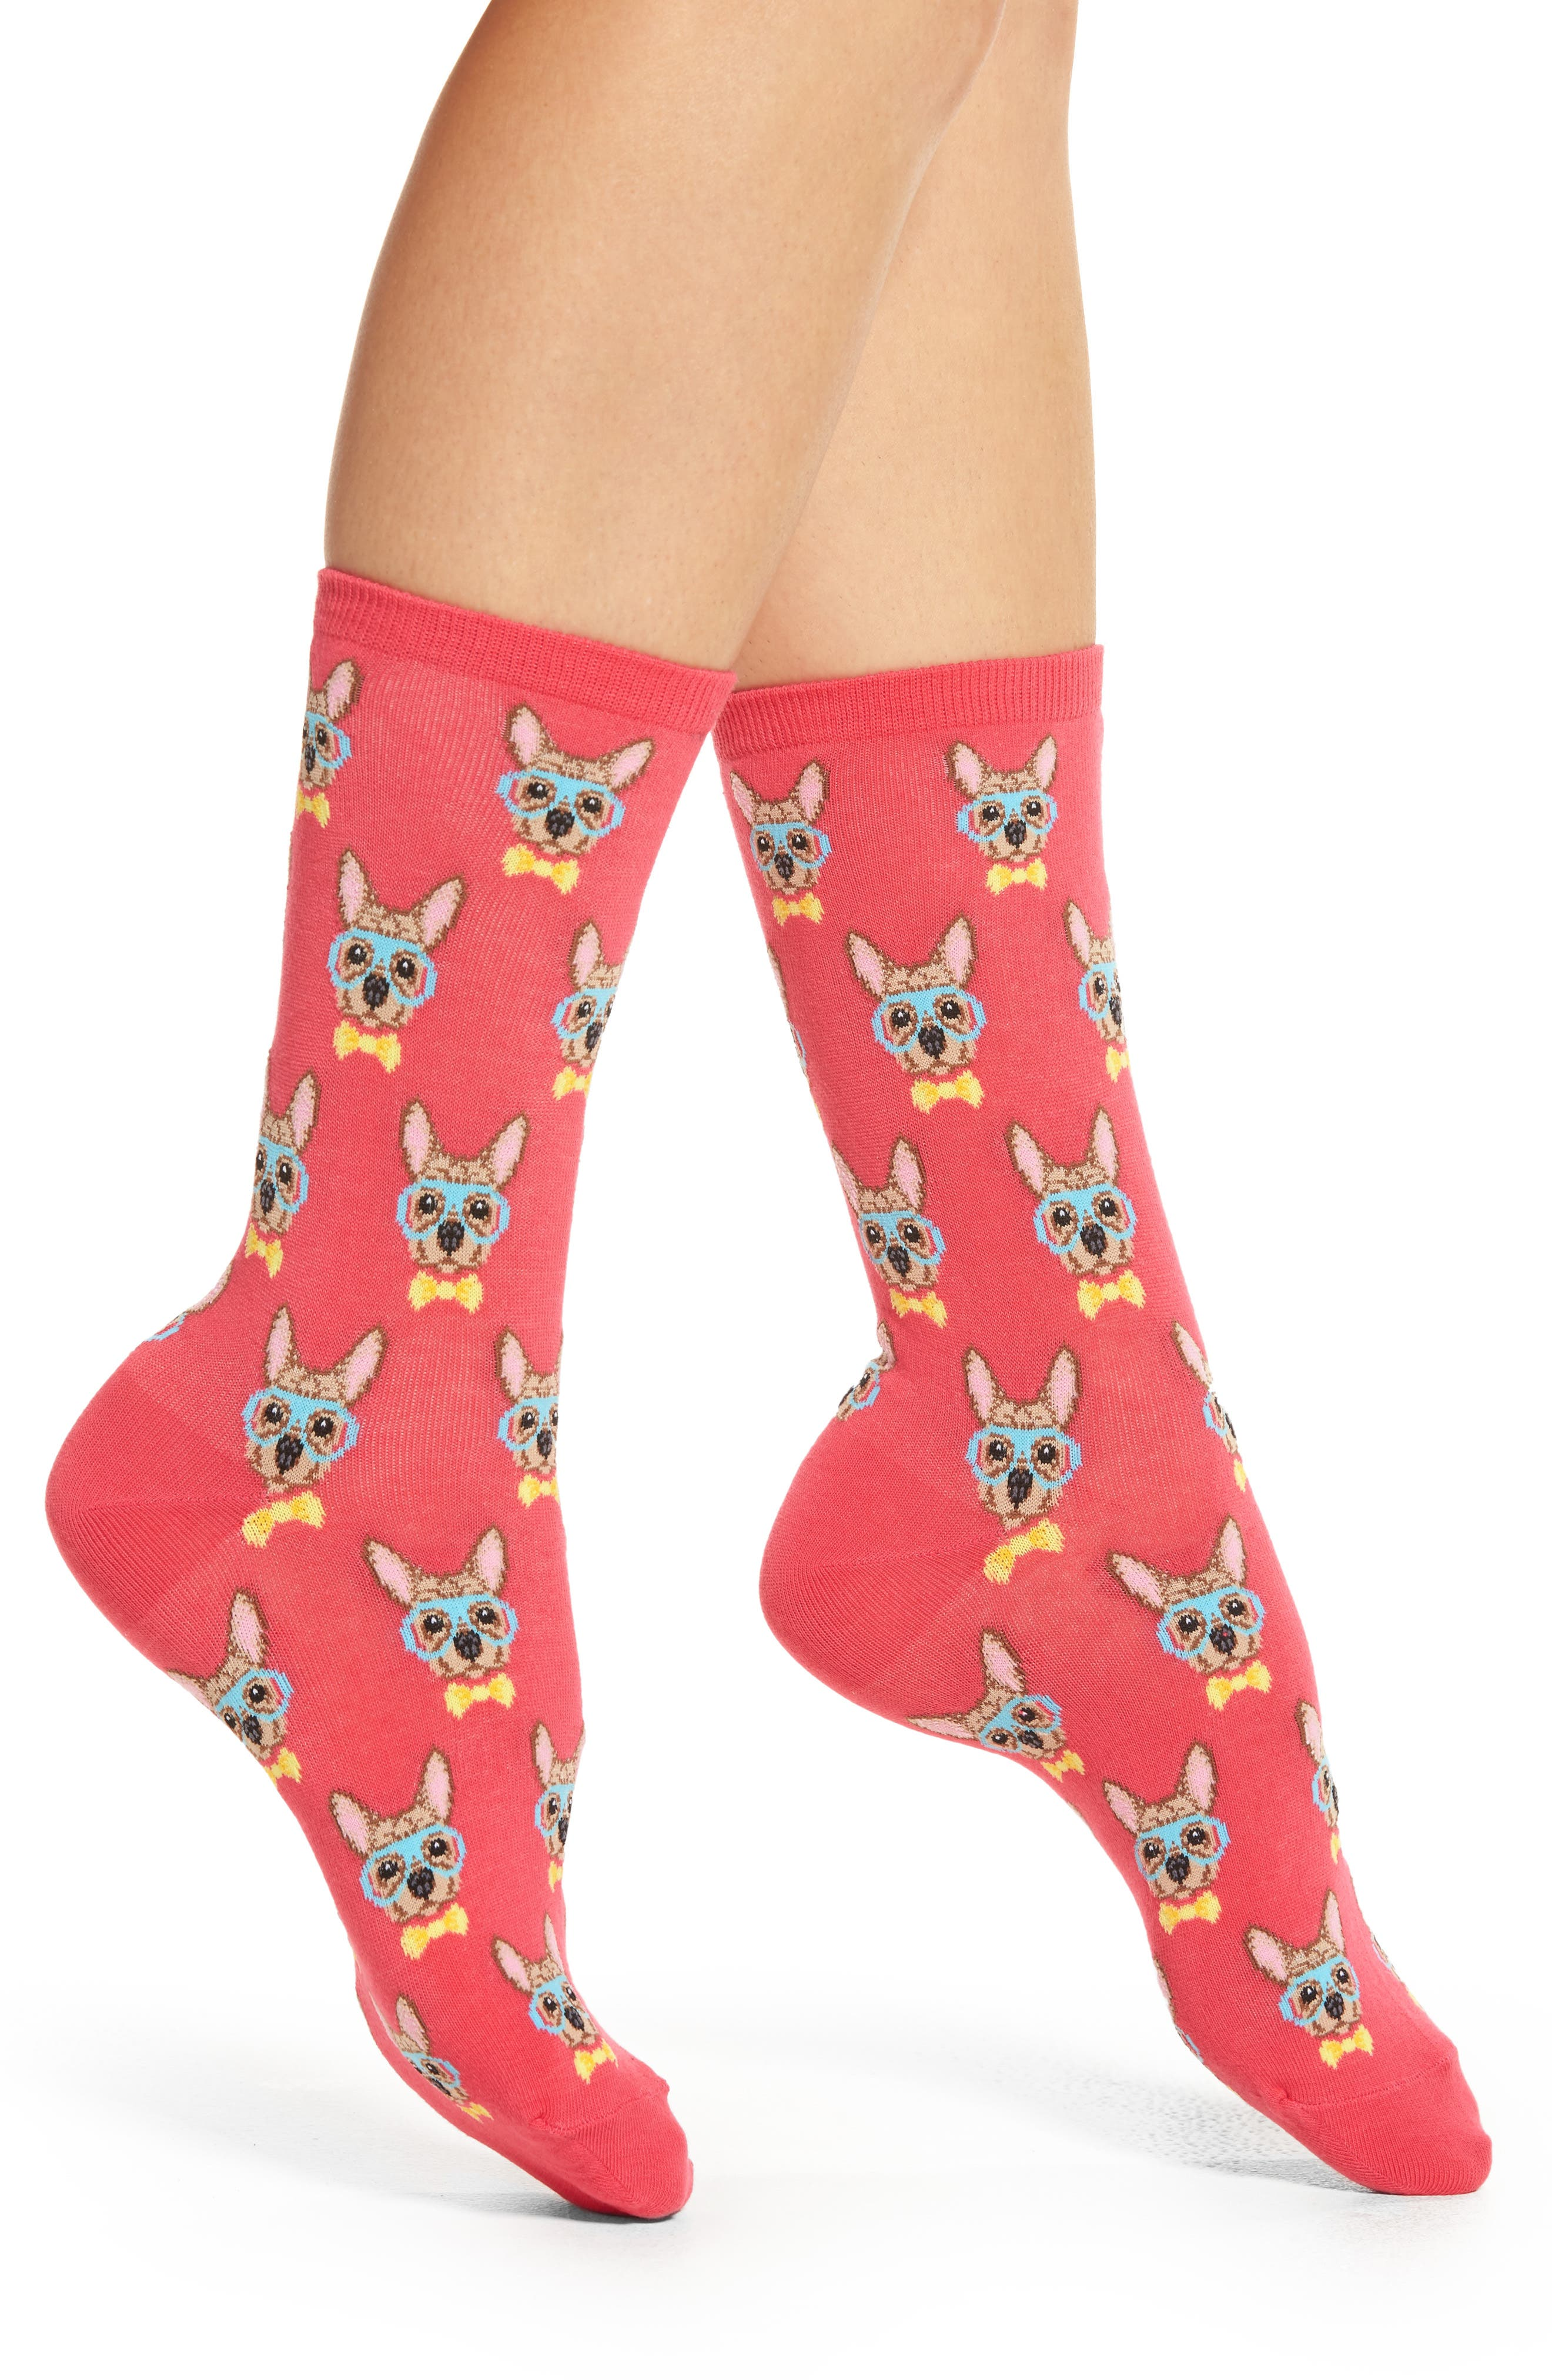 Alternate Image 1 Selected - Hot Sox Smart Frenchie Crew Socks (3 for $15)